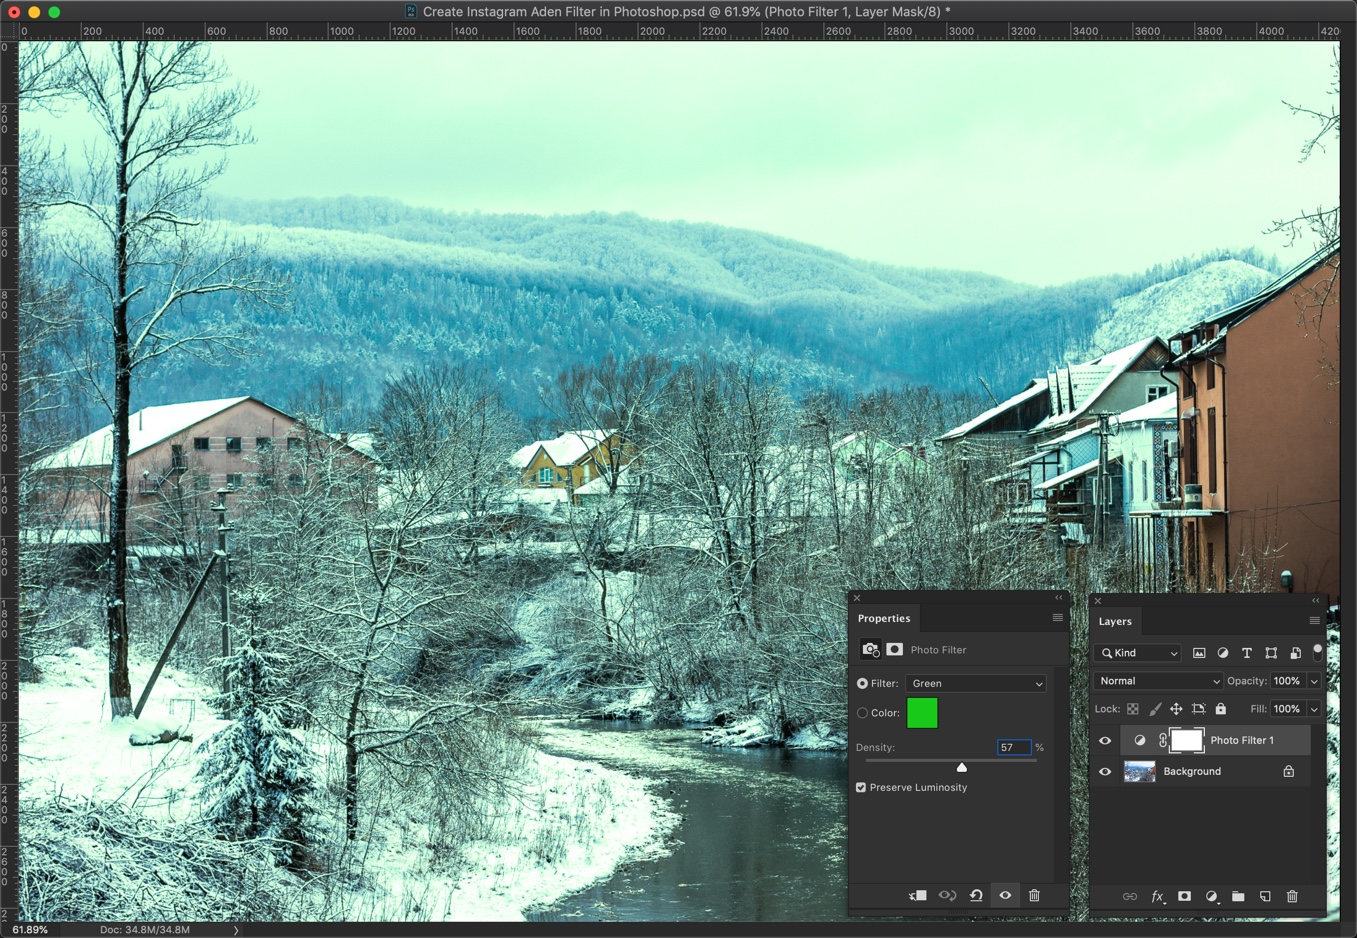 2 - [Action Included] Create Instagram Aden Filter in Photoshop